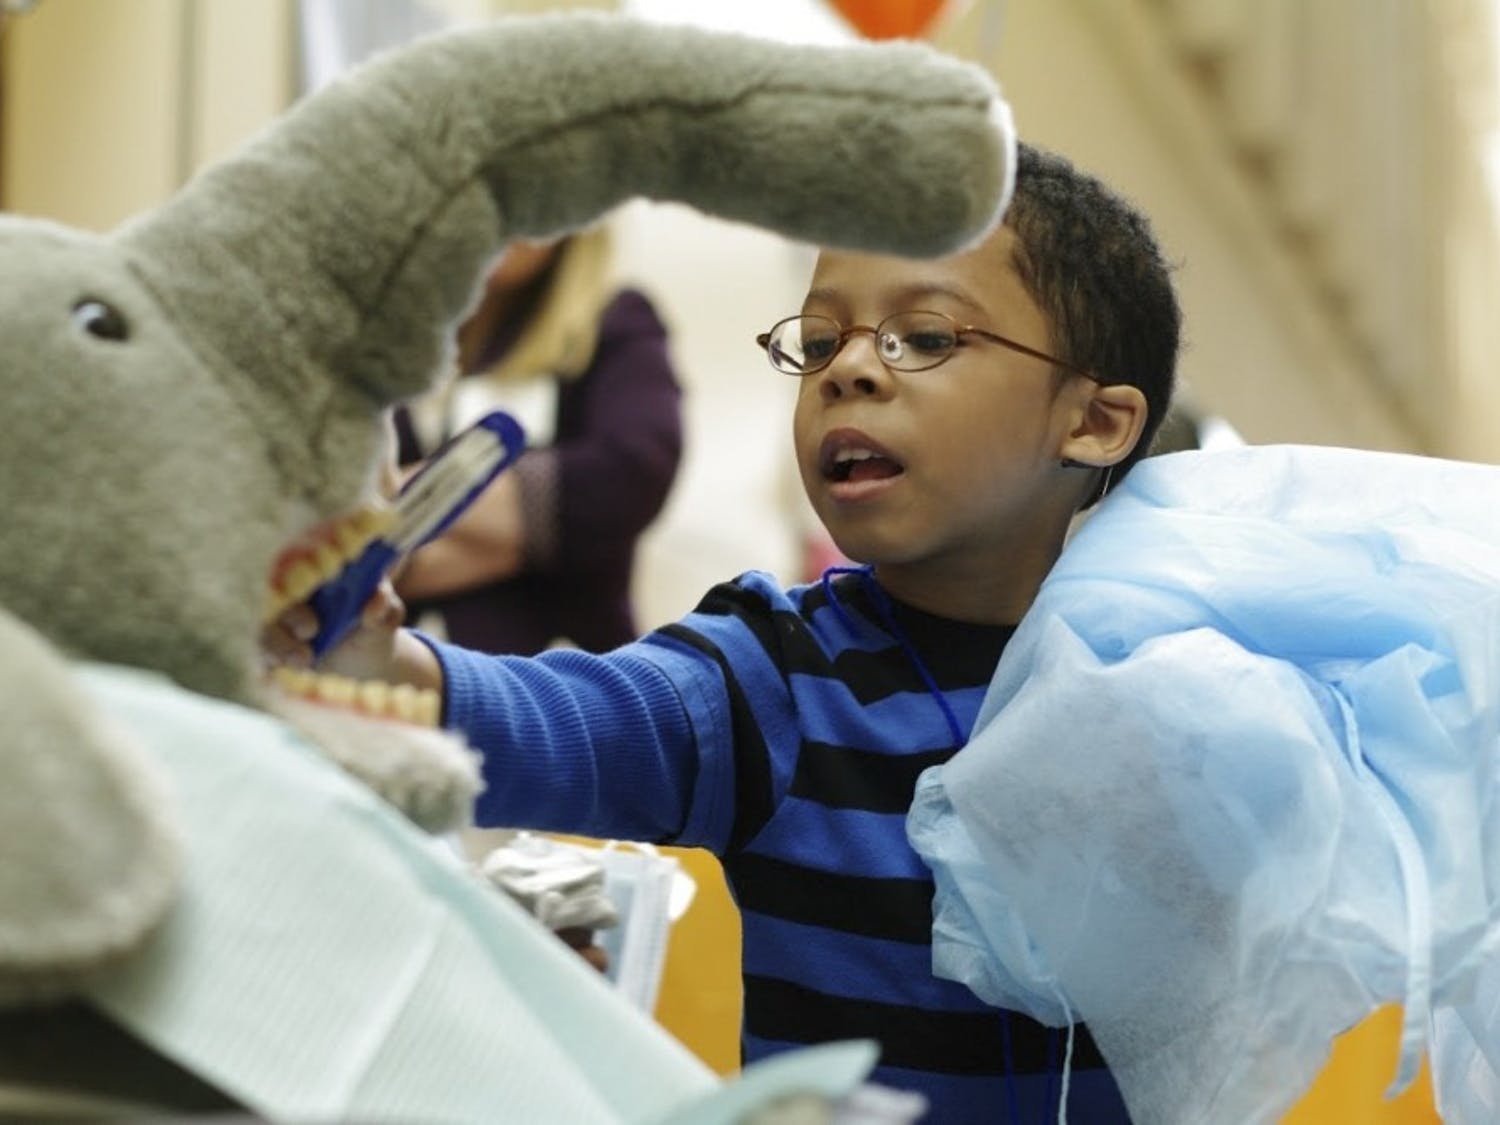 The School of Dentistry provided free dental care to around 100 children on Feb. 6, 2015. Kaleb Blue, then a 3-year-old student at Durham Head Start, practiced brushing teeth on a stuffed animal during the event.